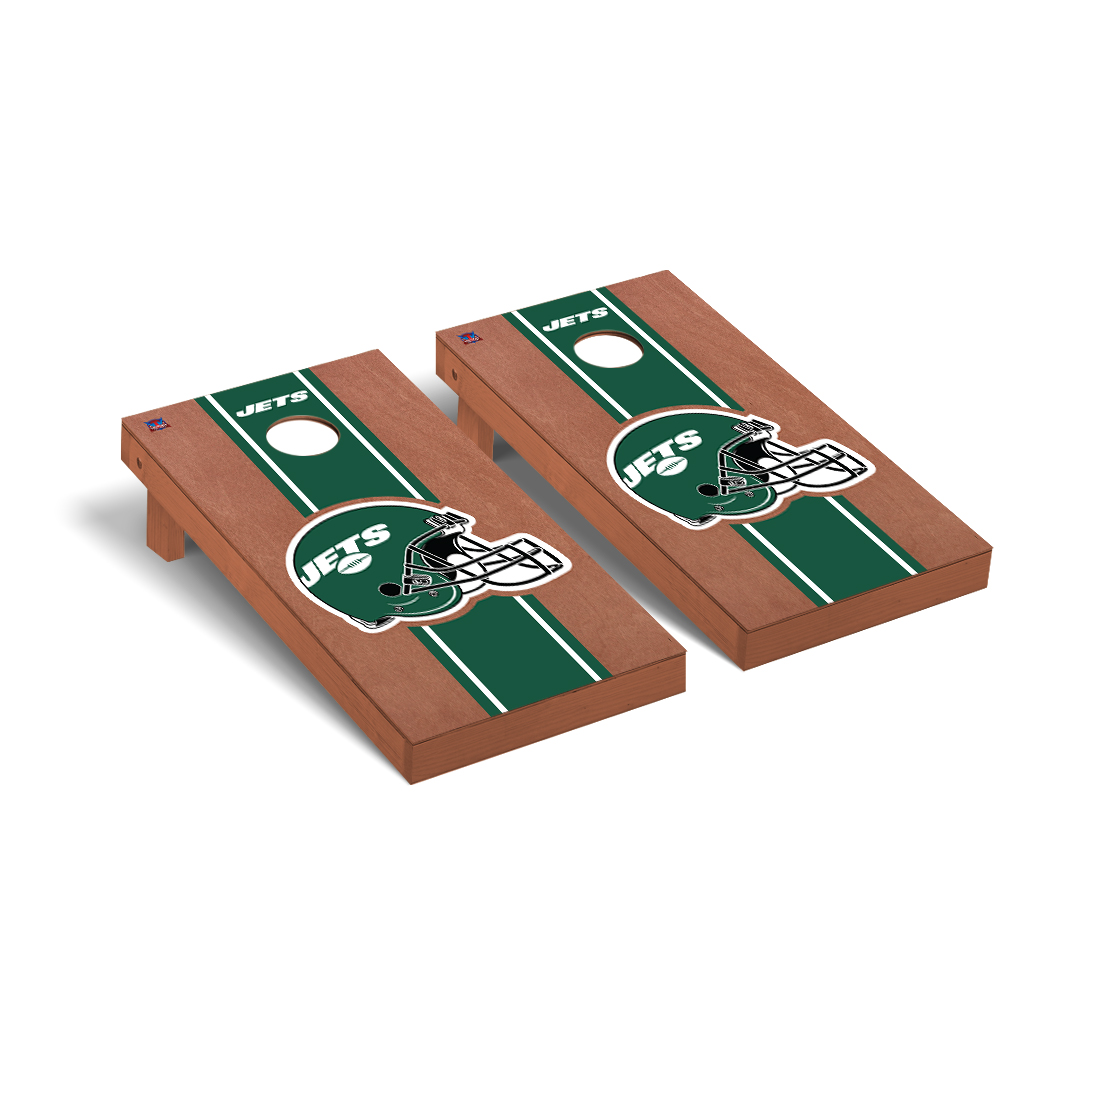 New York Jets NFL Football Cornhole Game Set Rosewood Stained Stripe Version